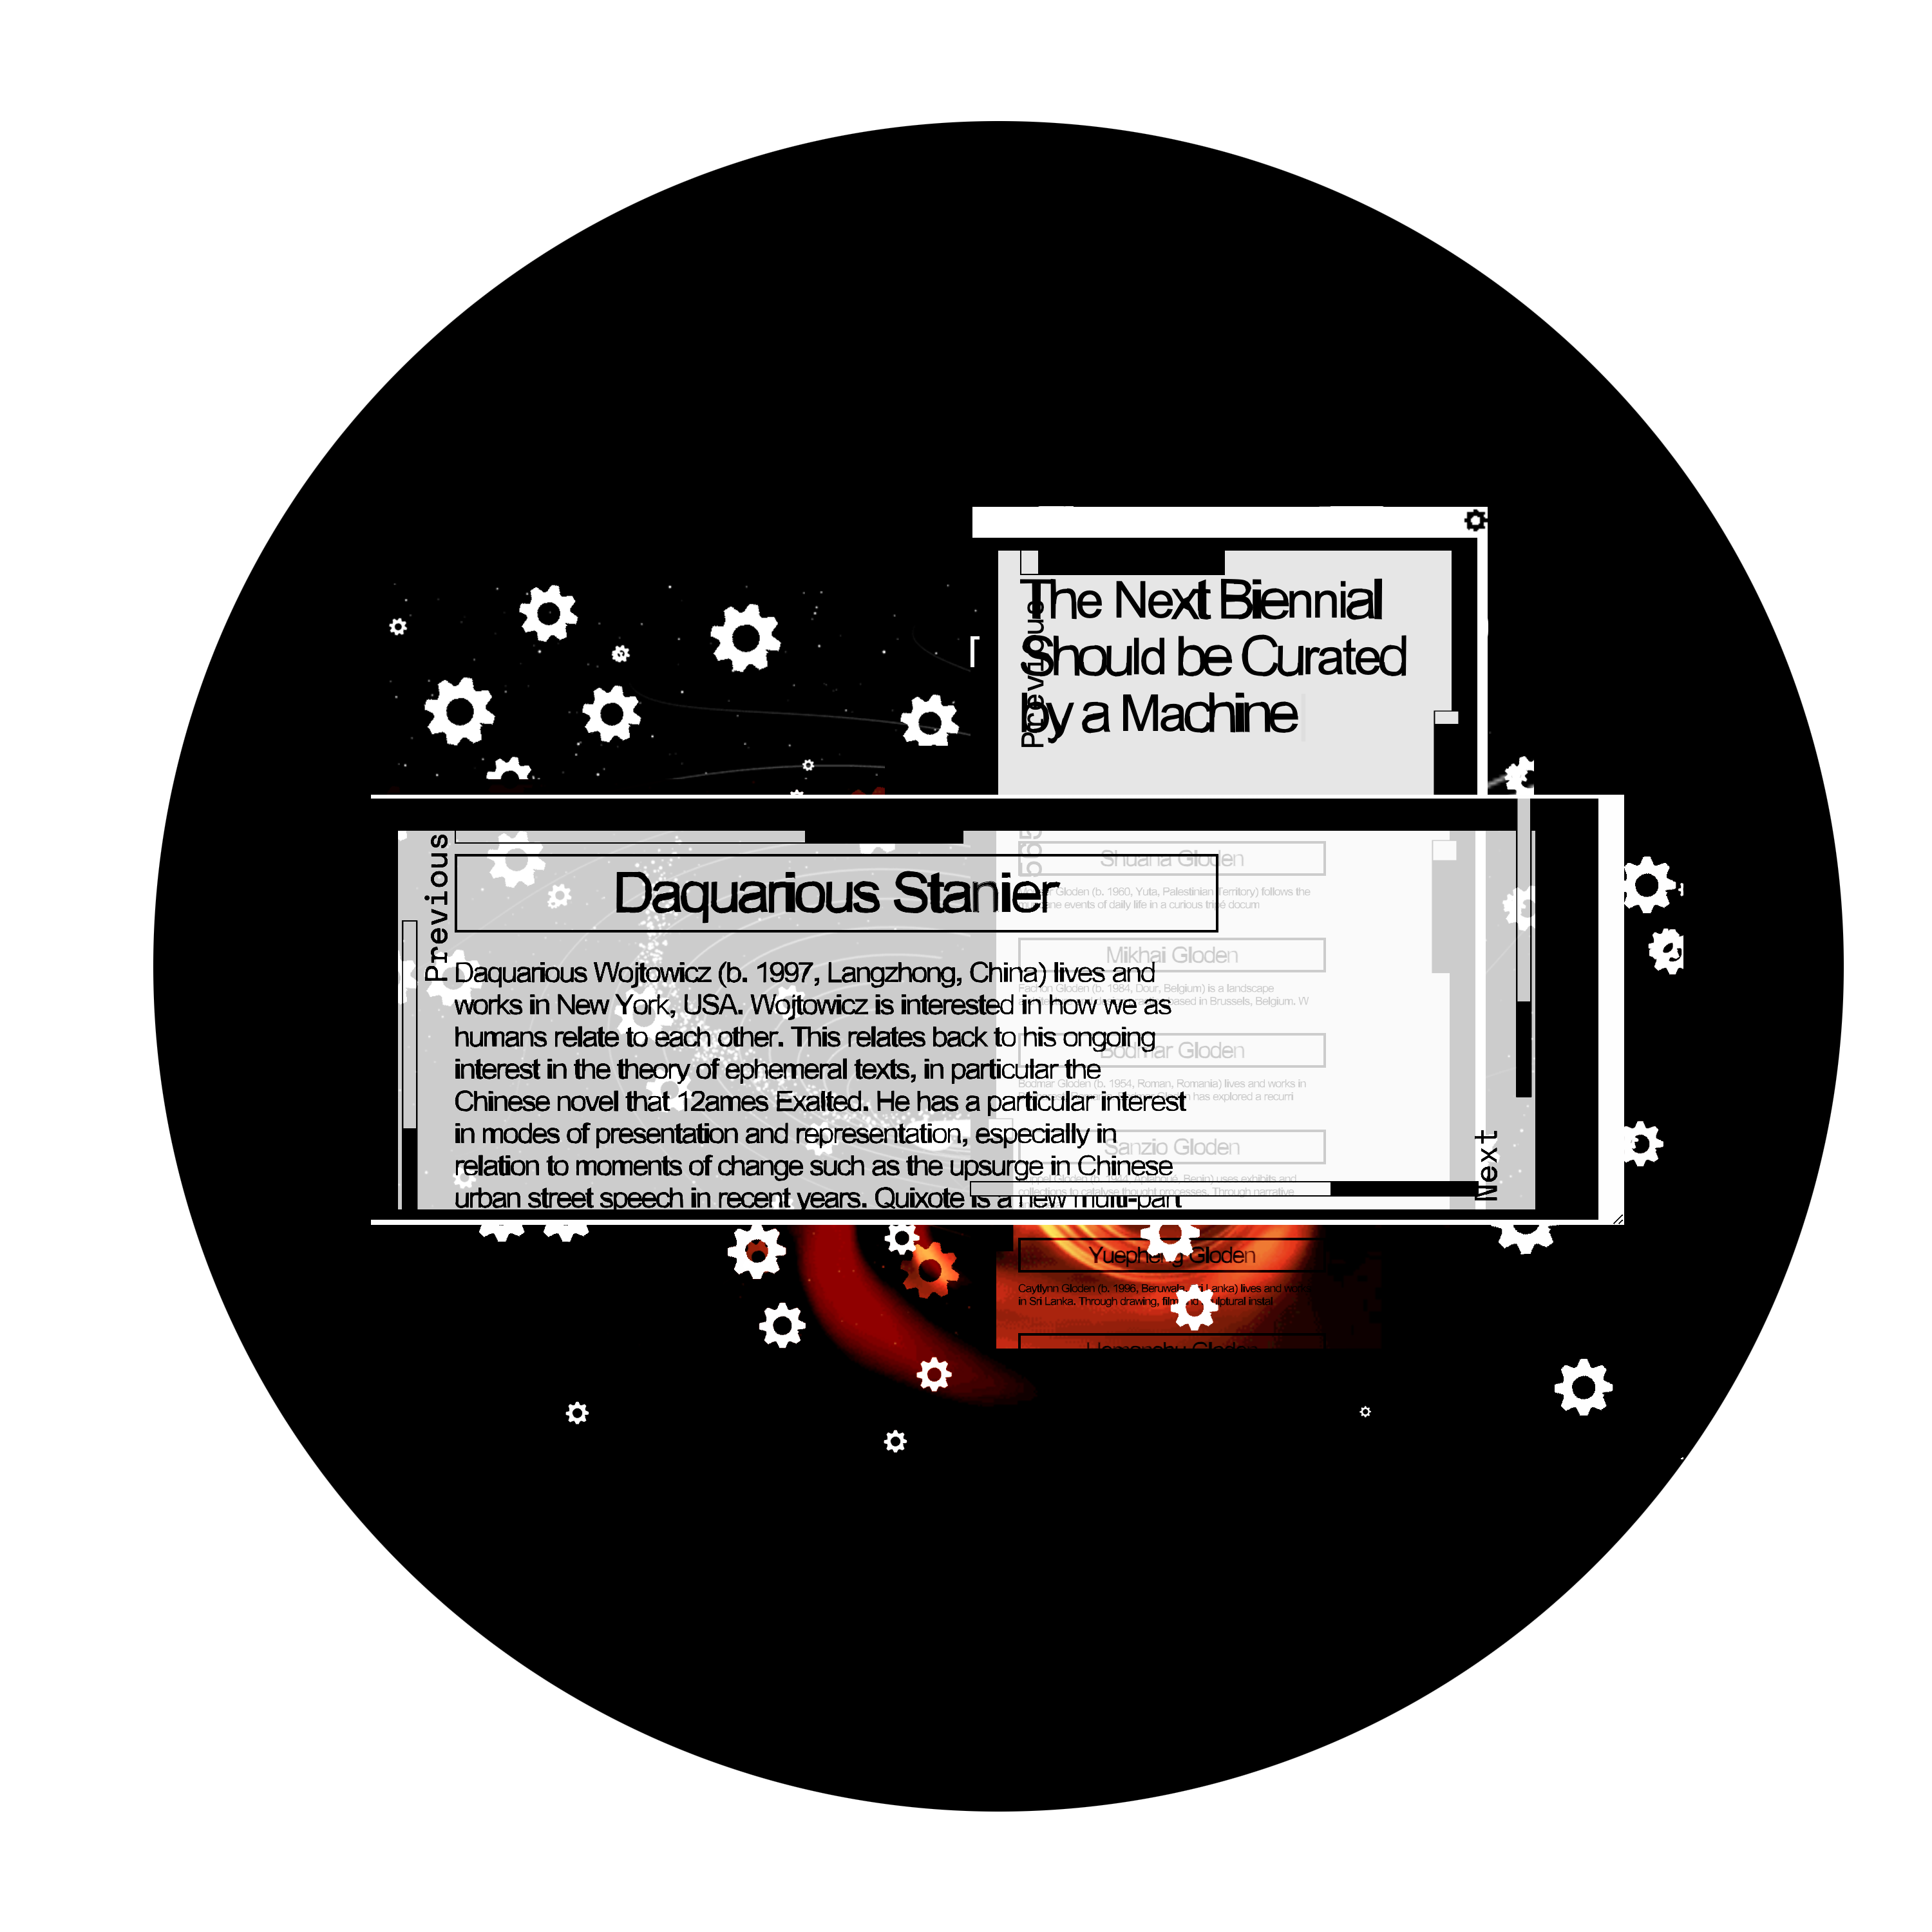 Overlaid gray digital text boxes against the background of a black circle with a design of white gears and red-orange swirls